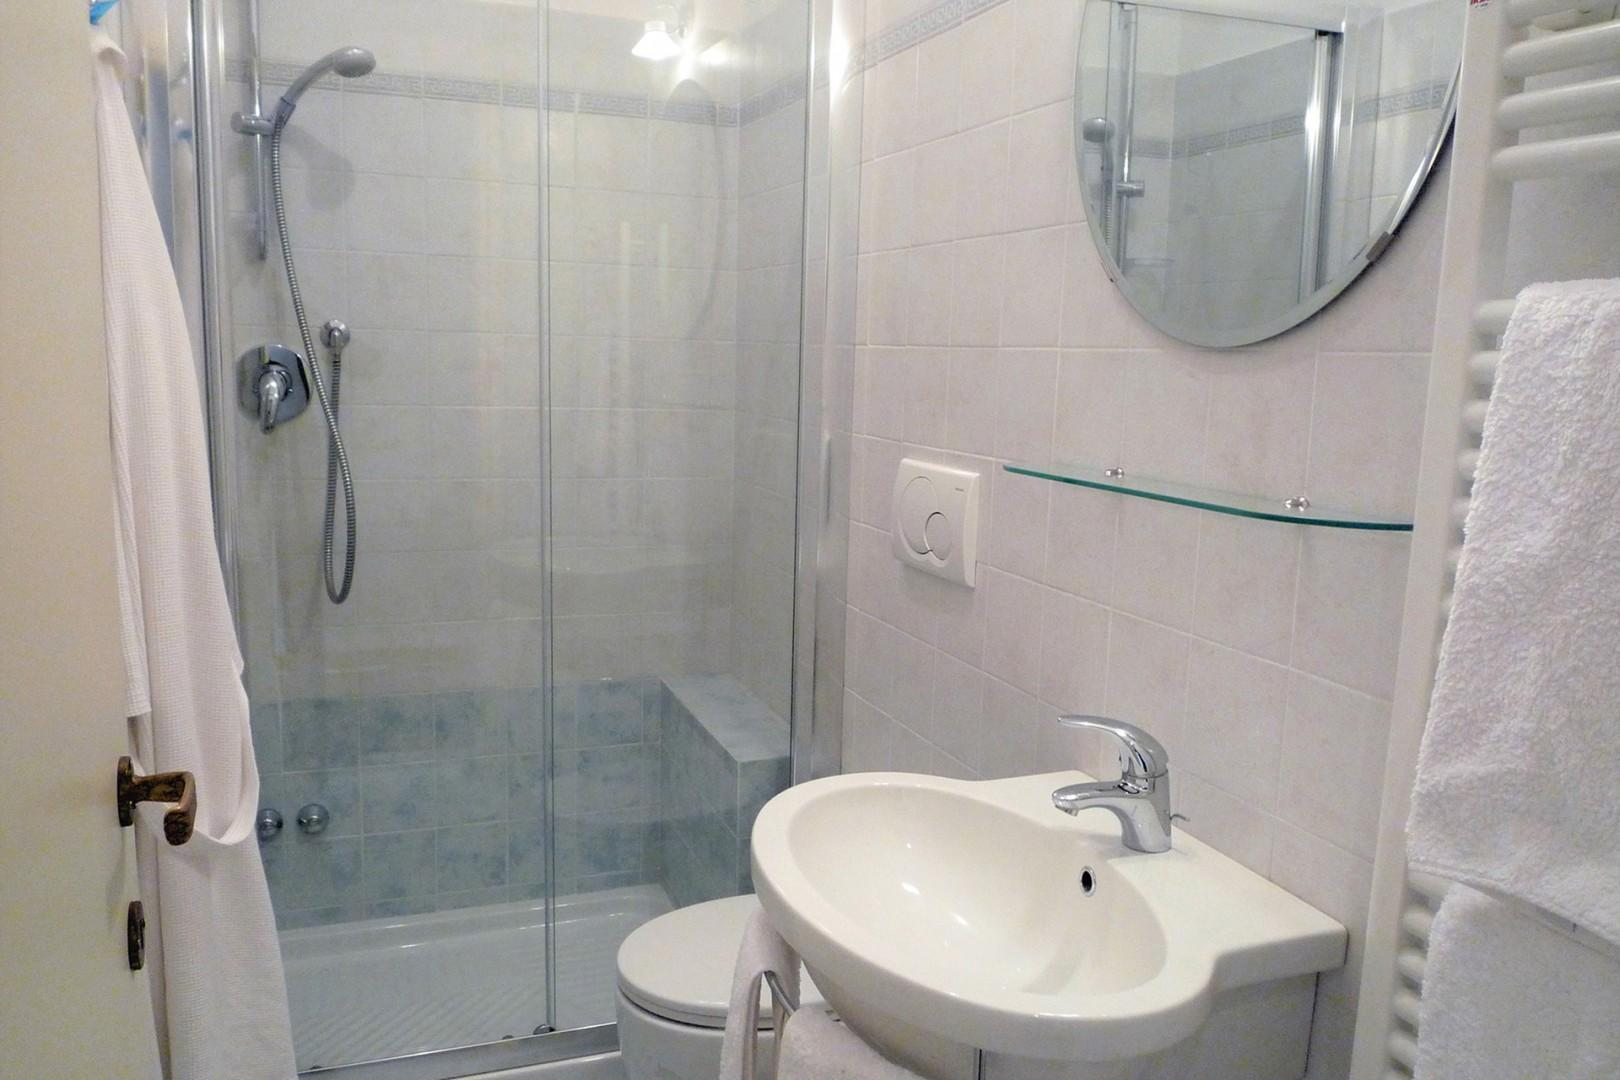 Bathroom 2 also has a fully enclosed shower.